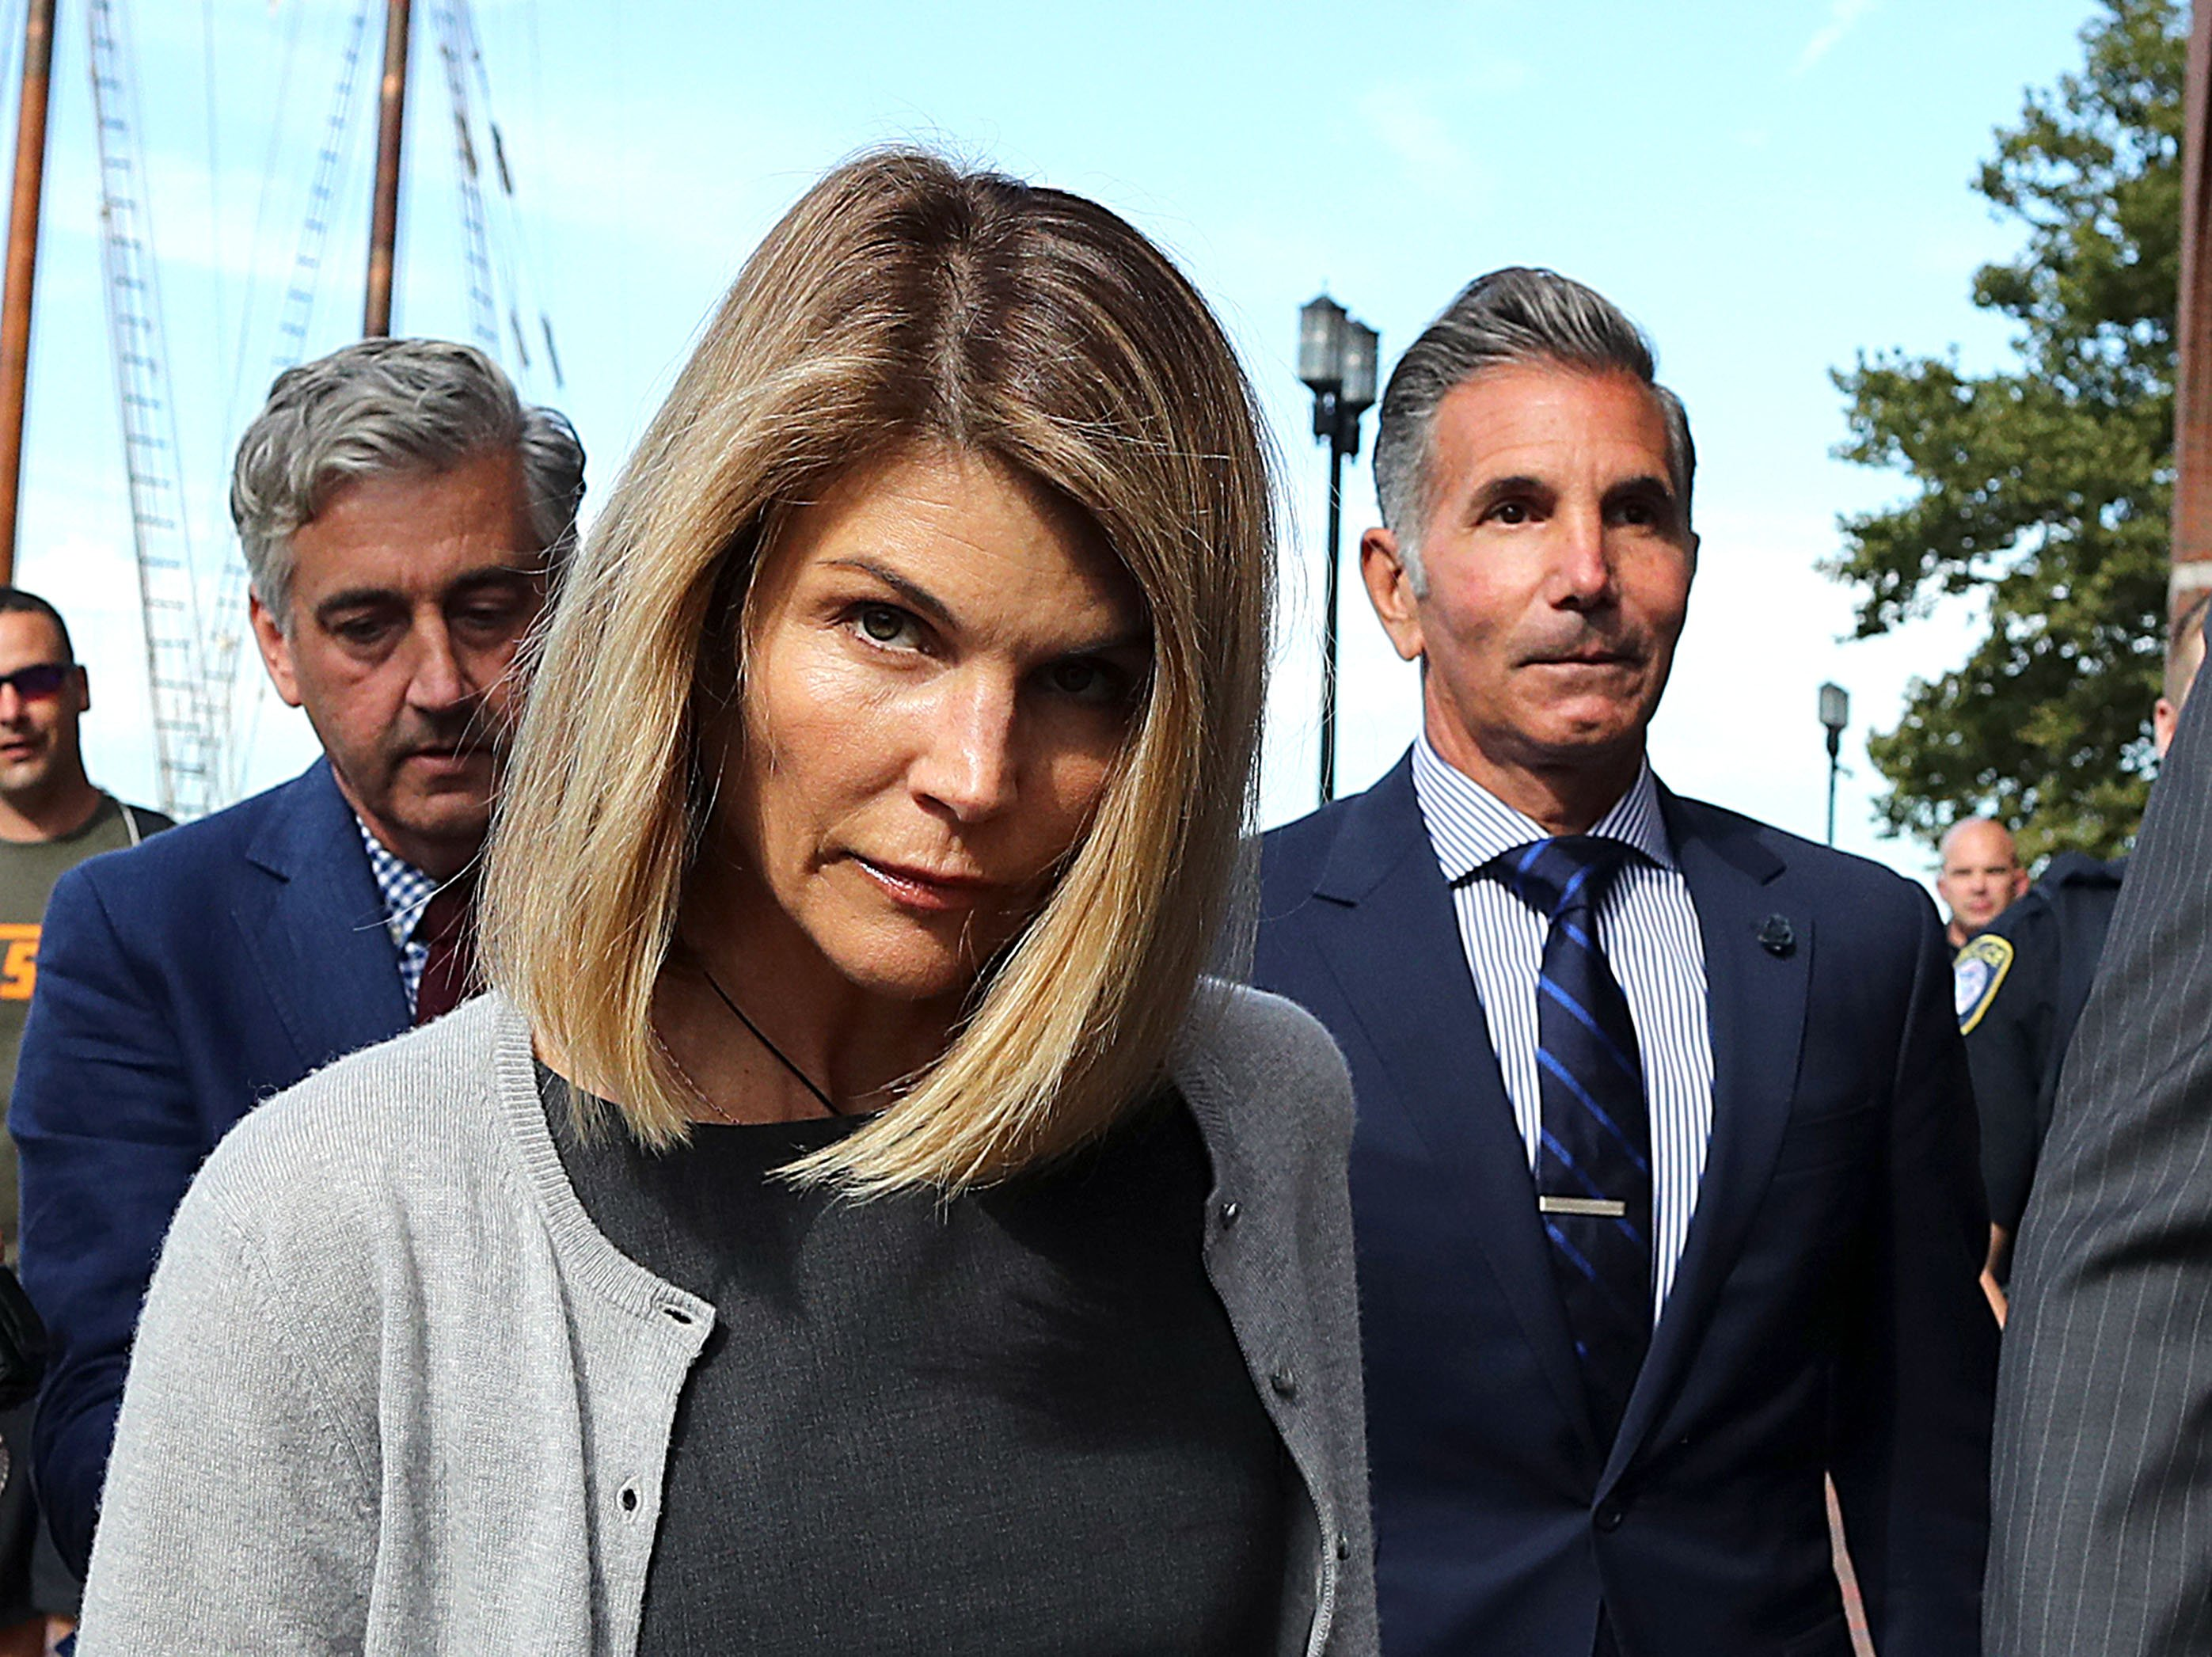 Lori Loughlin and her husband Mossimo Giannulli pictured outside the John Joseph Moakley United States Courthouse, 2019. | Photo: Getty Images